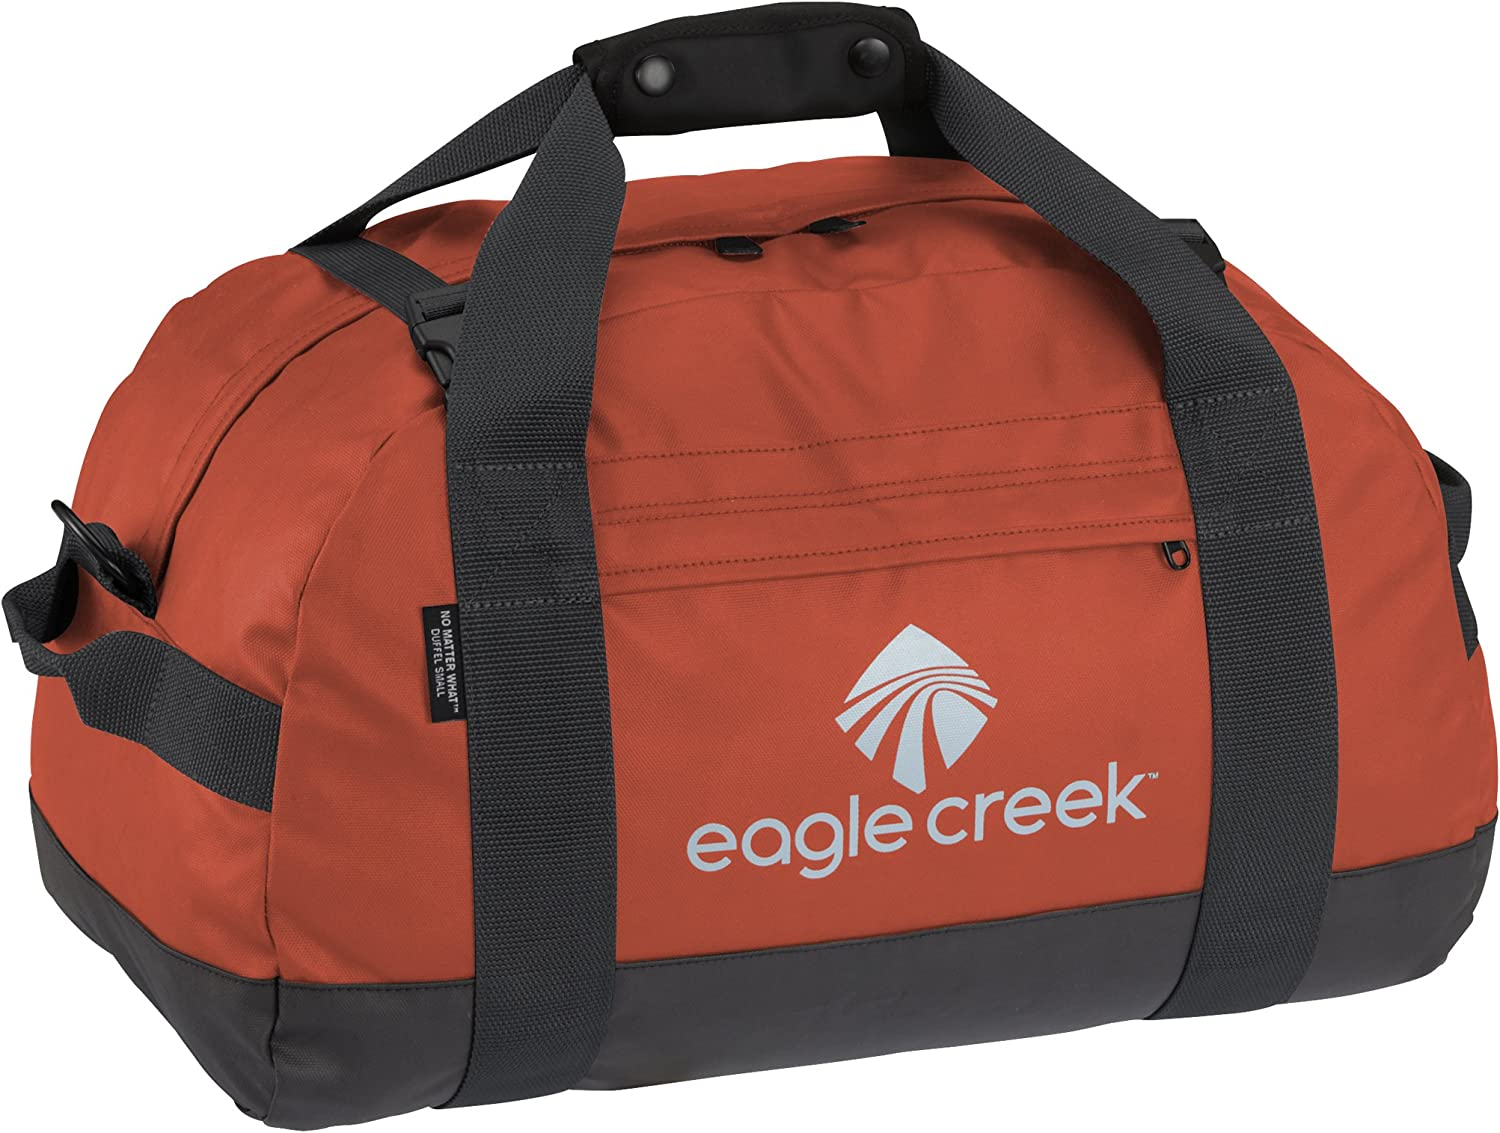 Eagle Creek No Matter What Duffel - Water-Resistant Carry On Travel Luggage